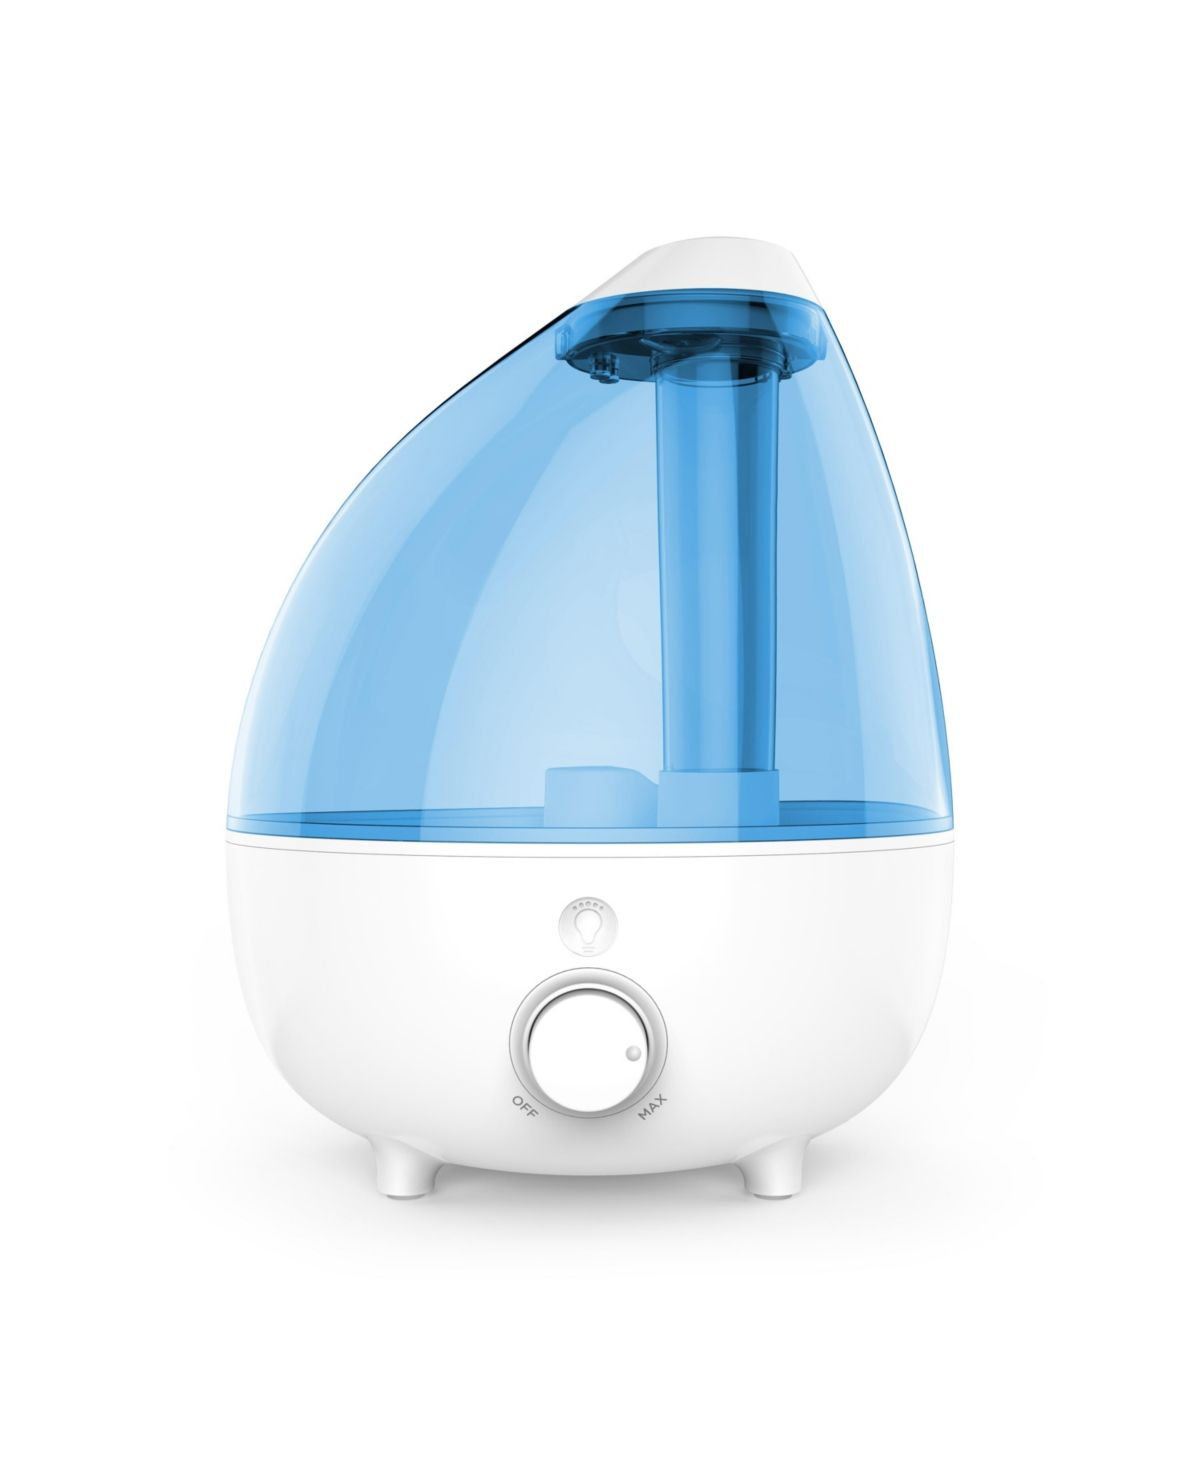 Keep the air in your home moisturized all day long with Pure Enrichment's MistAire Xl Cool Mist Humidifier. This powerful and aesthetically pleasing humidifier is packed with smart features that make it the perfect solution for improving the air quality in the dry areas of your home or office.